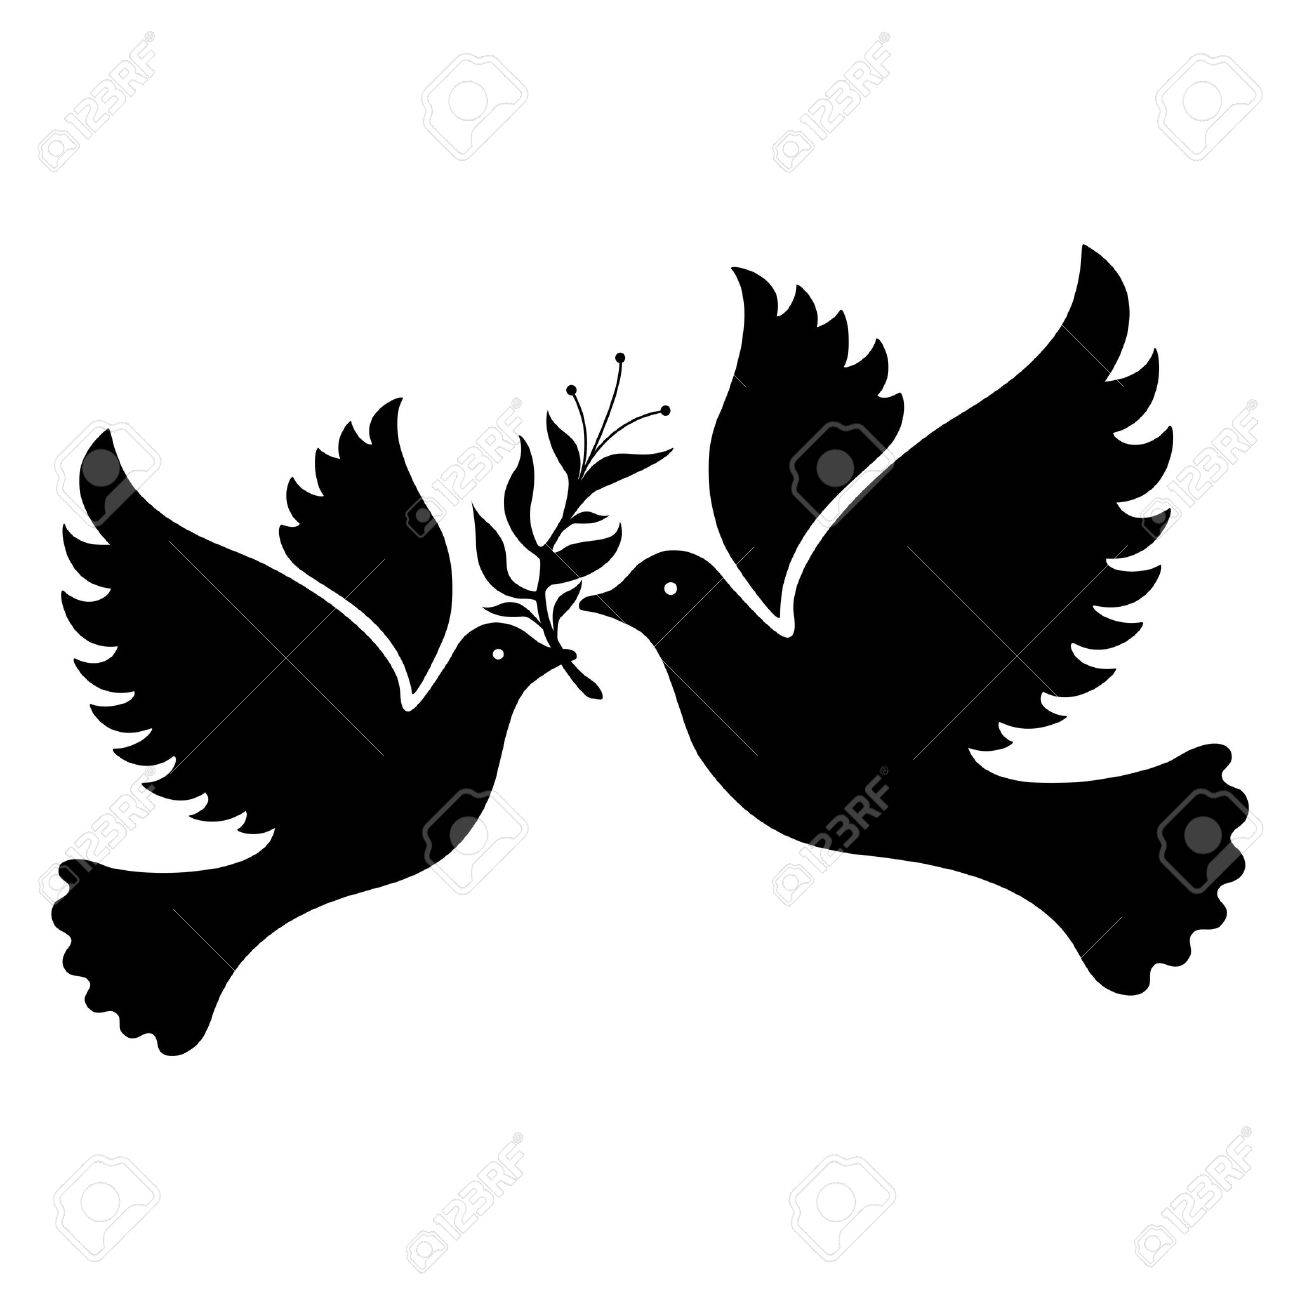 a free flying white dove symbol royalty free cliparts vectors and rh 123rf com Holy Spirit Dove Symbol Dove Symbol of Love